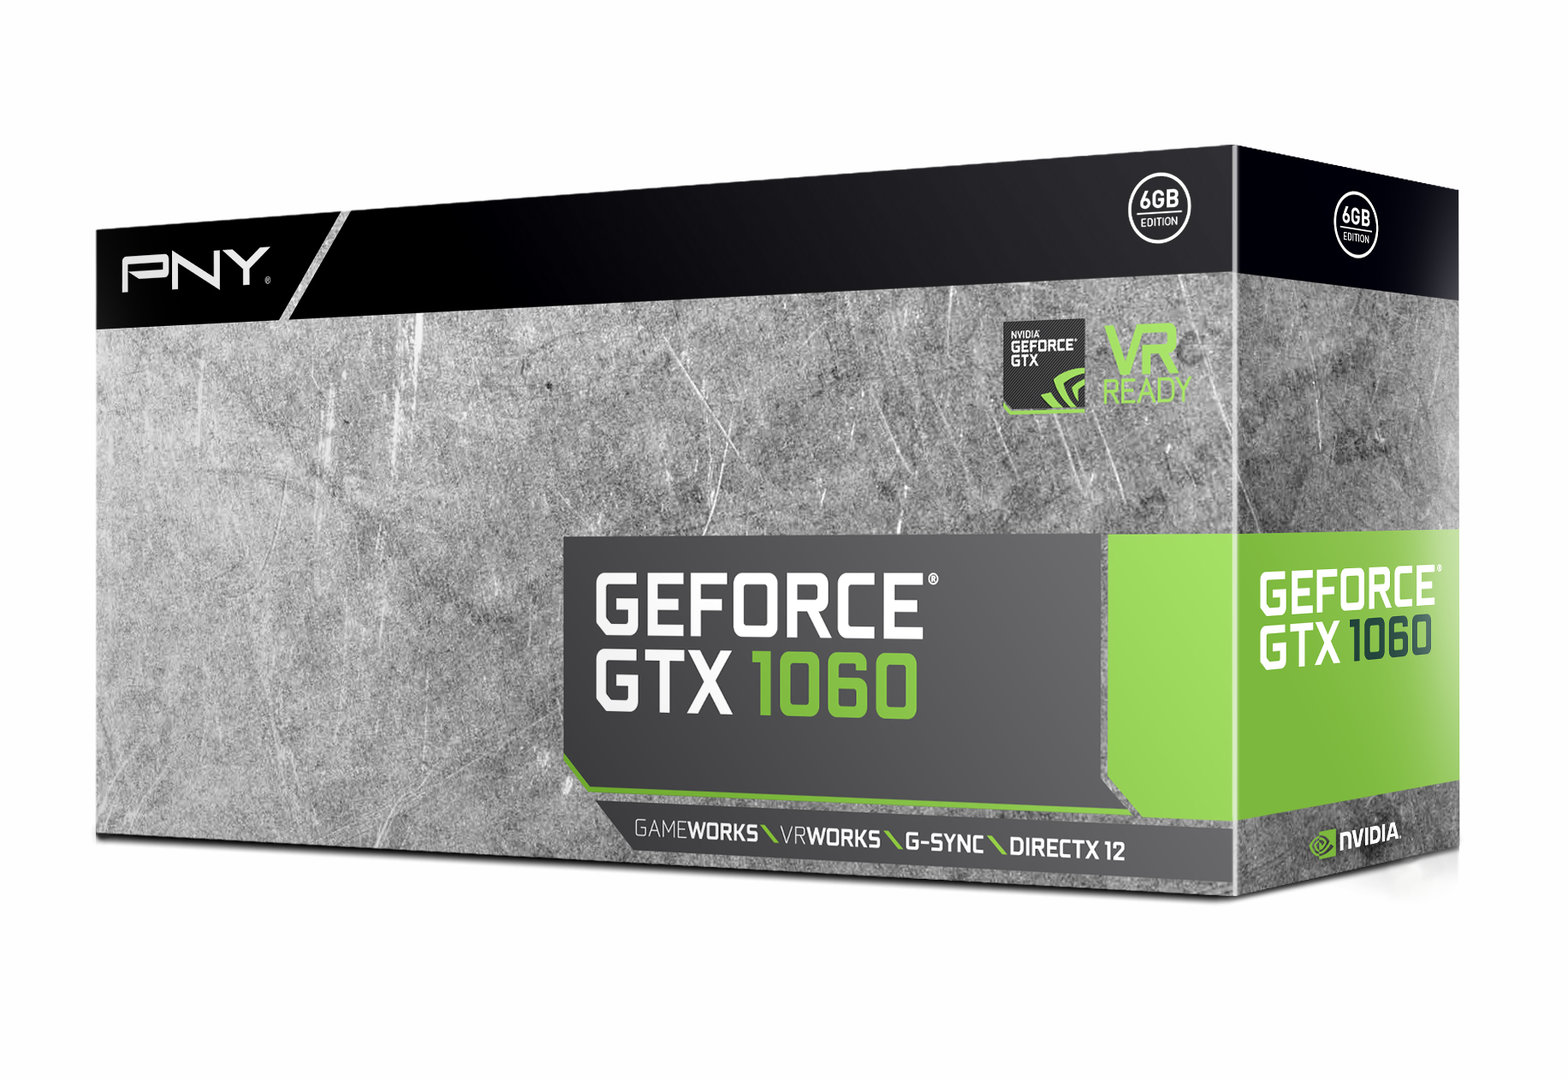 PNY GeForce GTX 1060